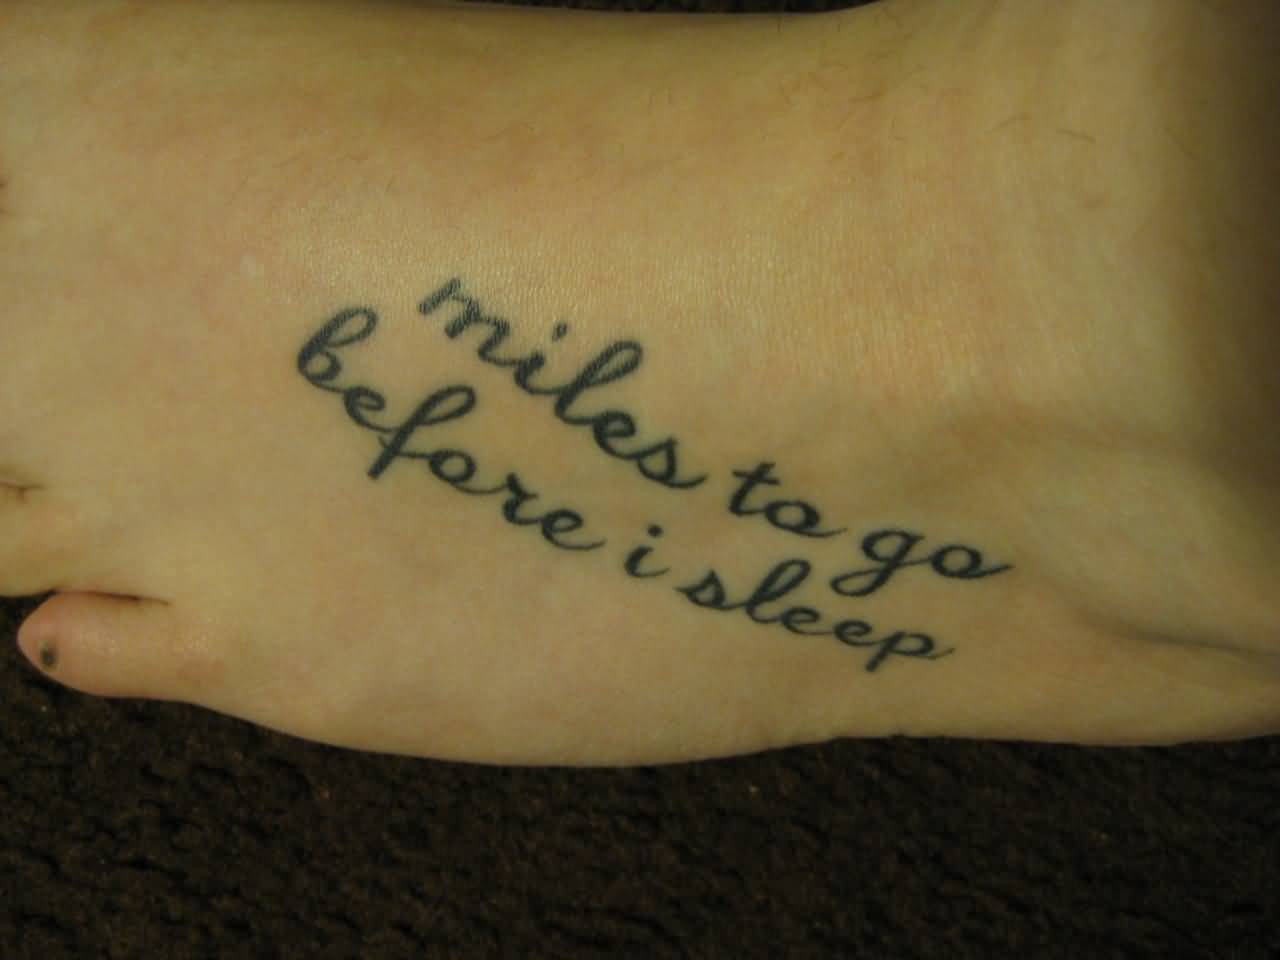 Grey Ink Nice Miles To Go Before I Sleep Poem Tattoo On Foot